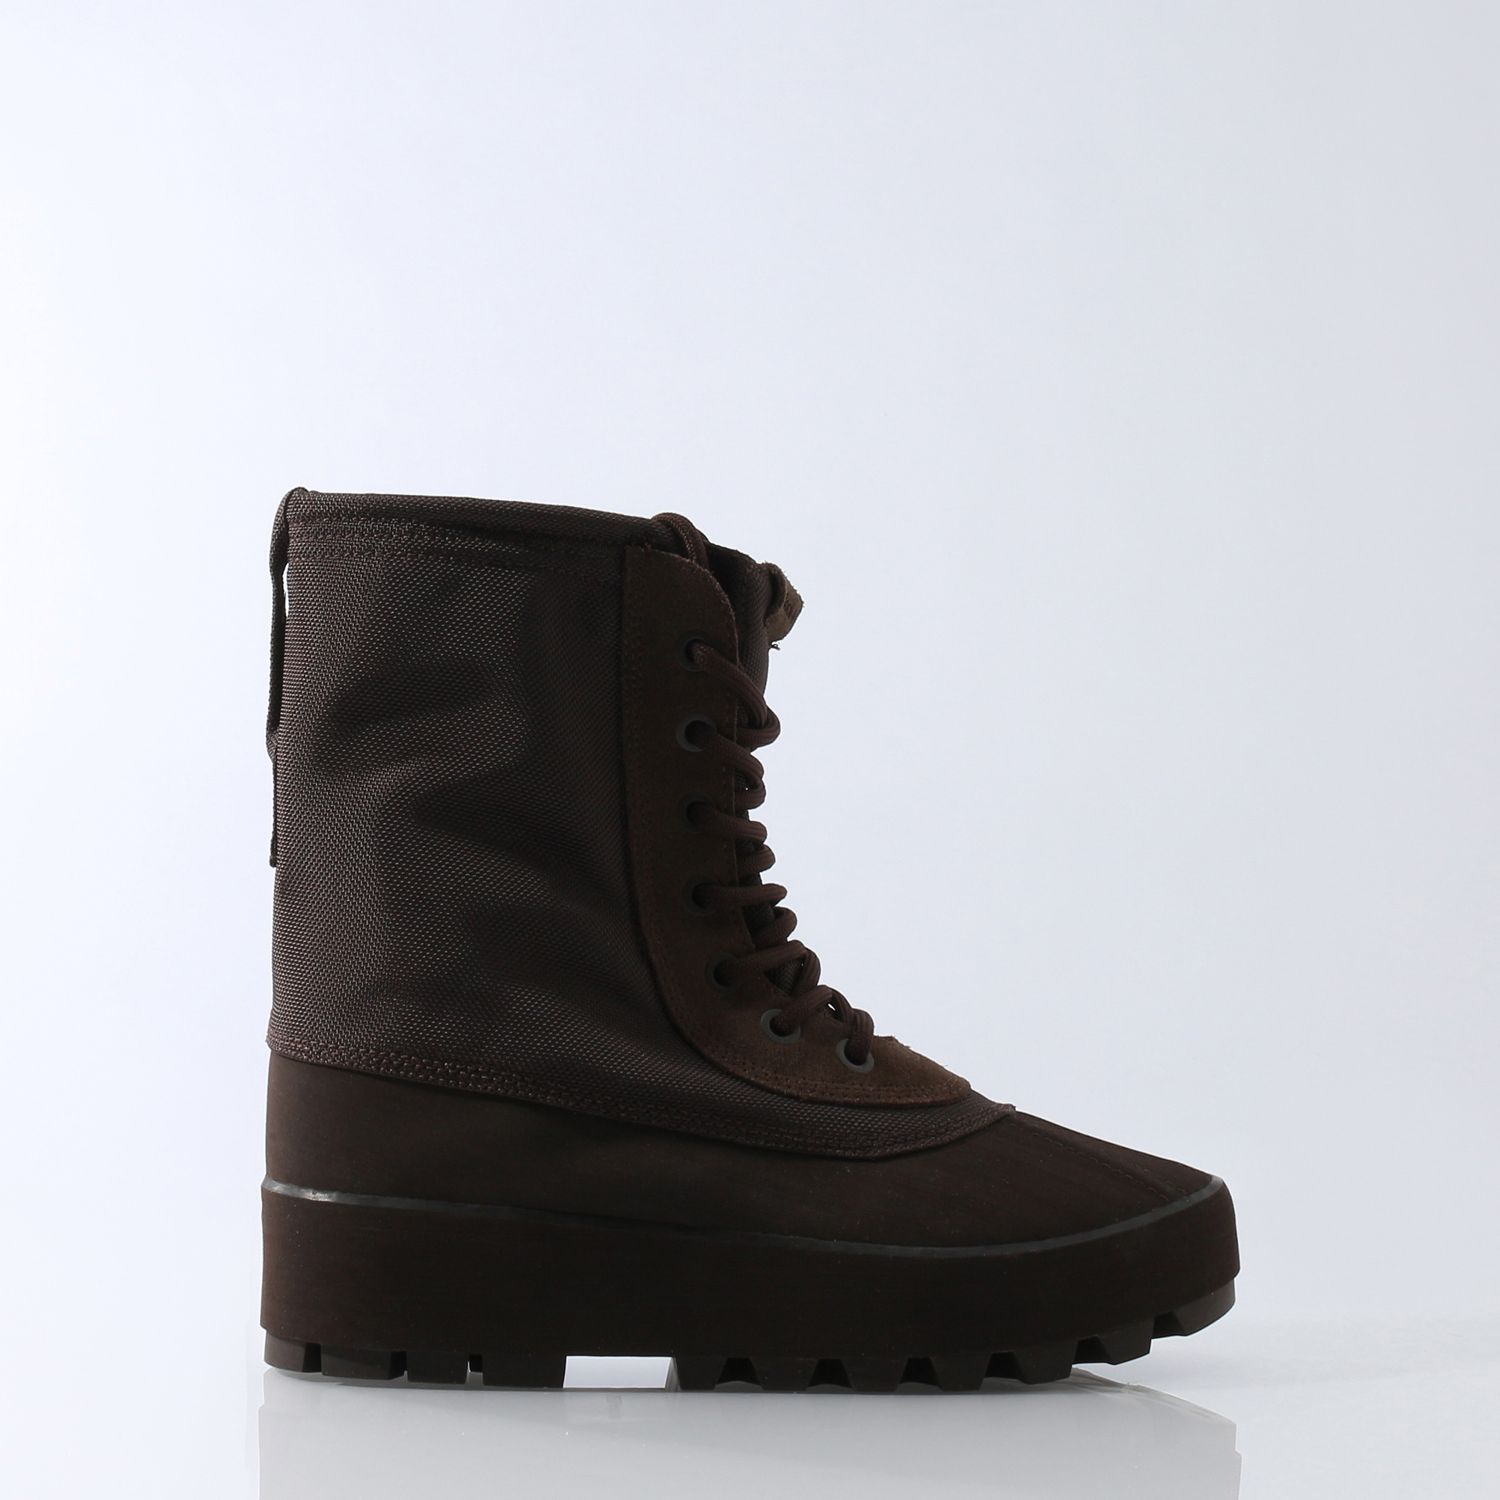 Yeezy Boost 950 Chocolate